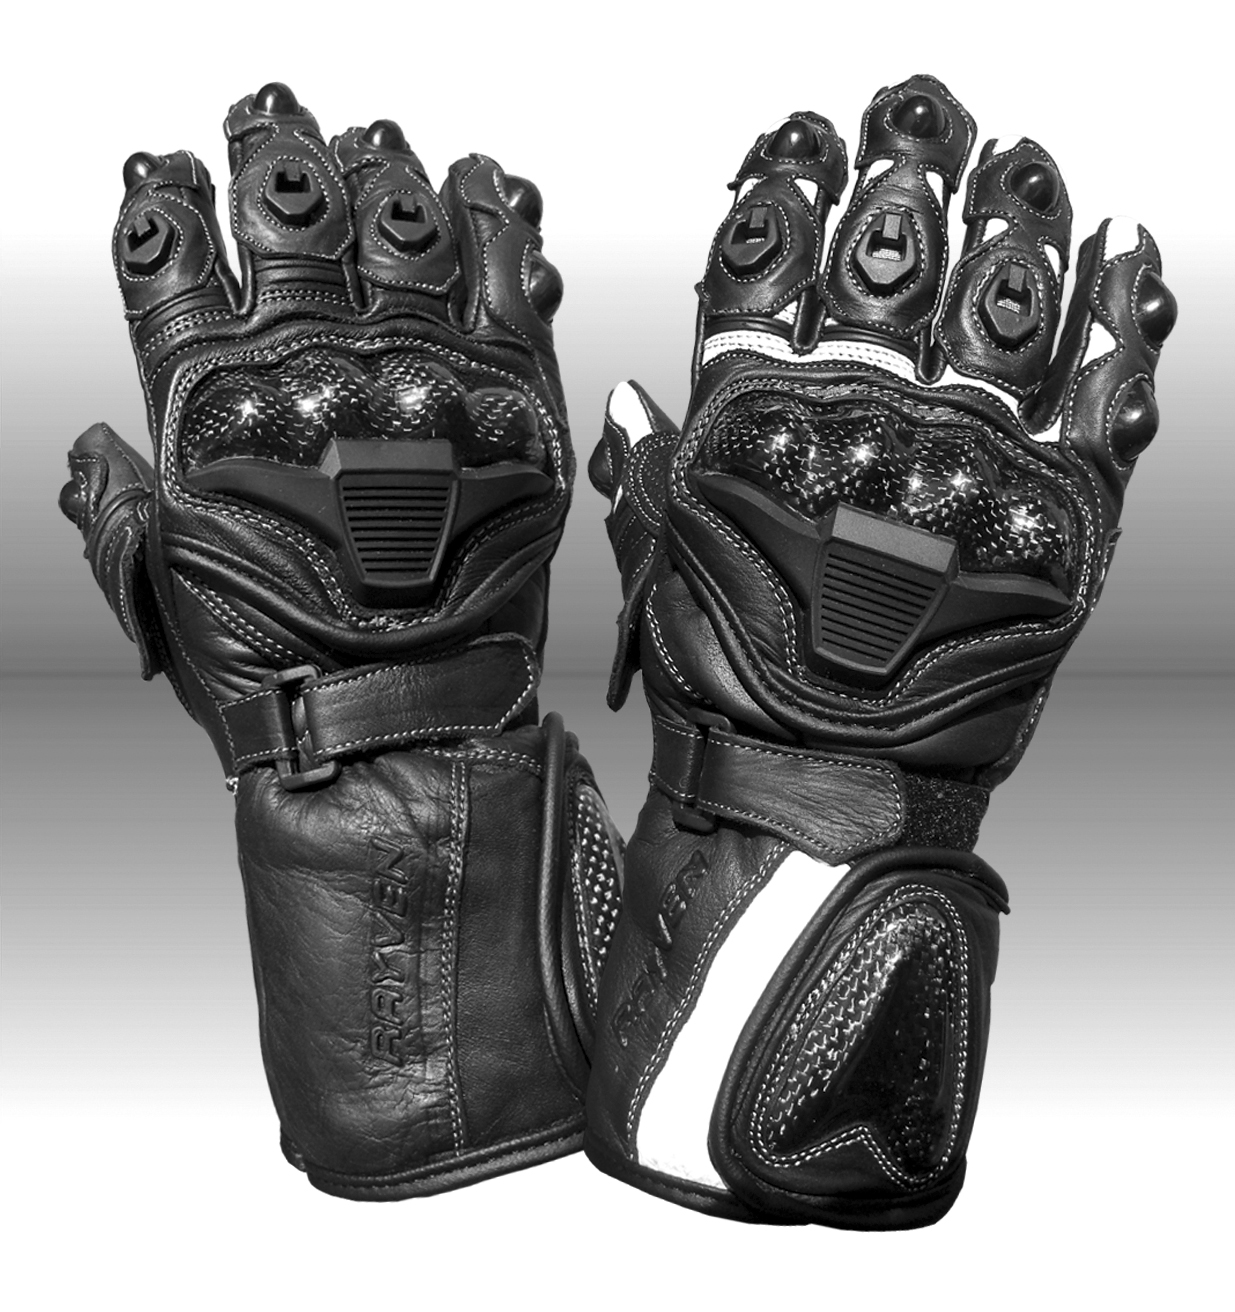 Rayven Fury Leather Knuckle Protection Scooter Motorbike Motorcycle Gloves